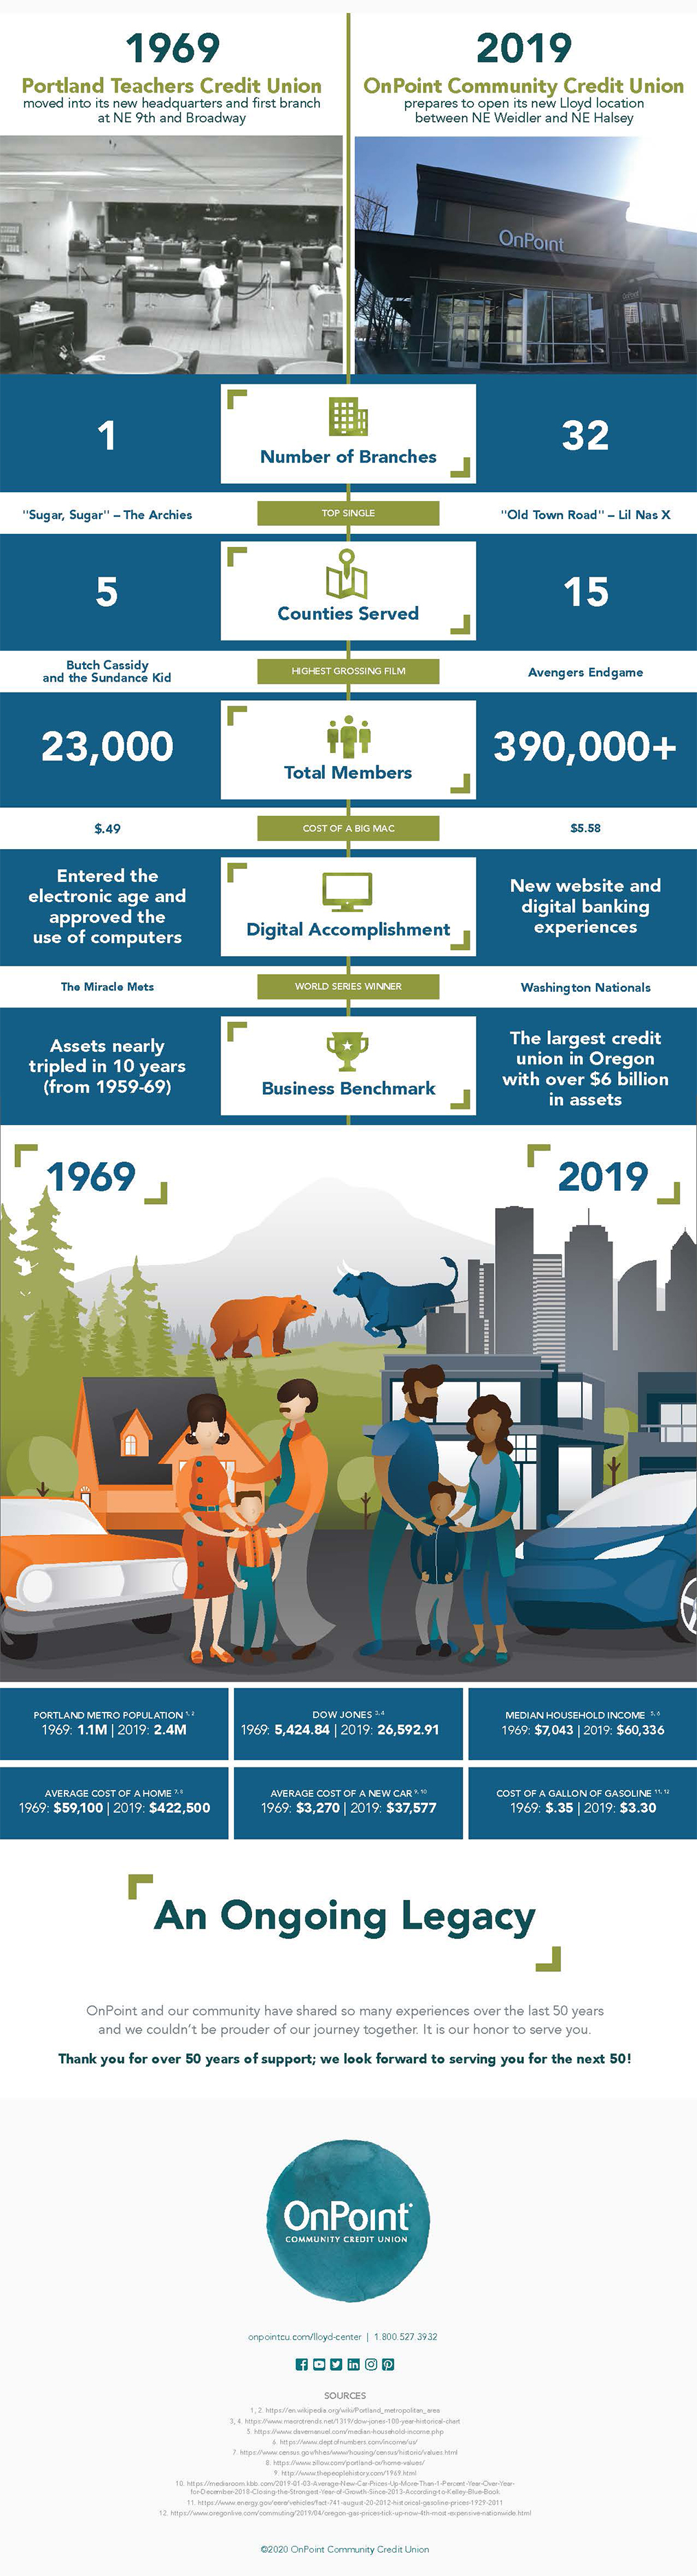 Infographic Celebrating 50 Years at Lloyd Center_REV_3.16.2020